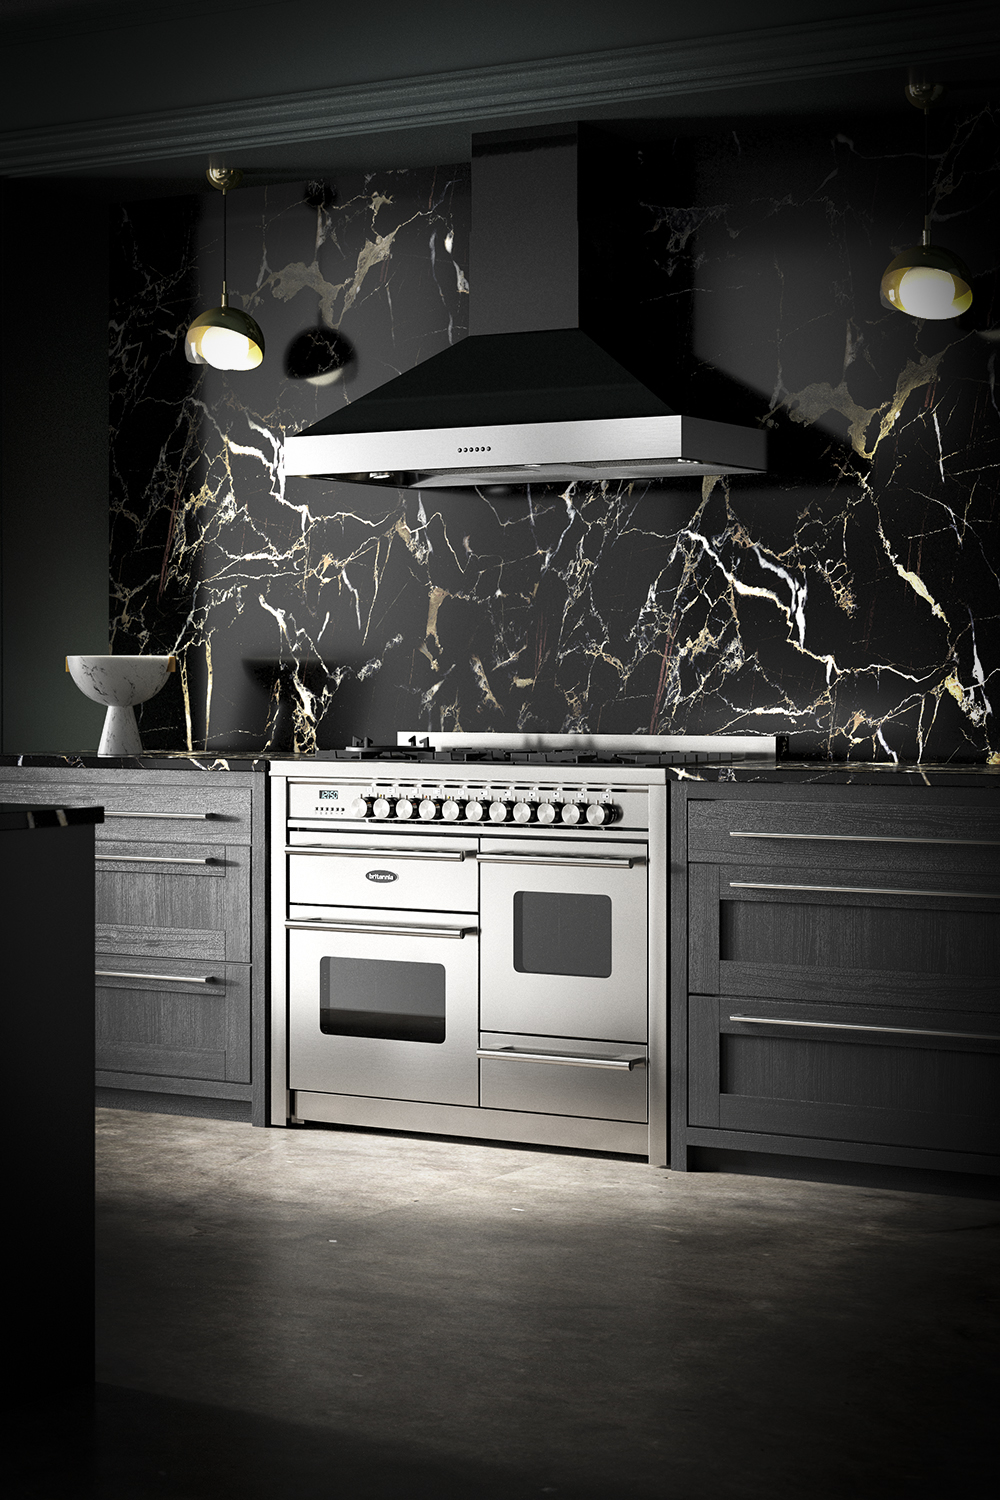 Britannia 110cm Delphi Latour hood angle 2 in black kitchen with marble splashback with black, gold and brown vein.